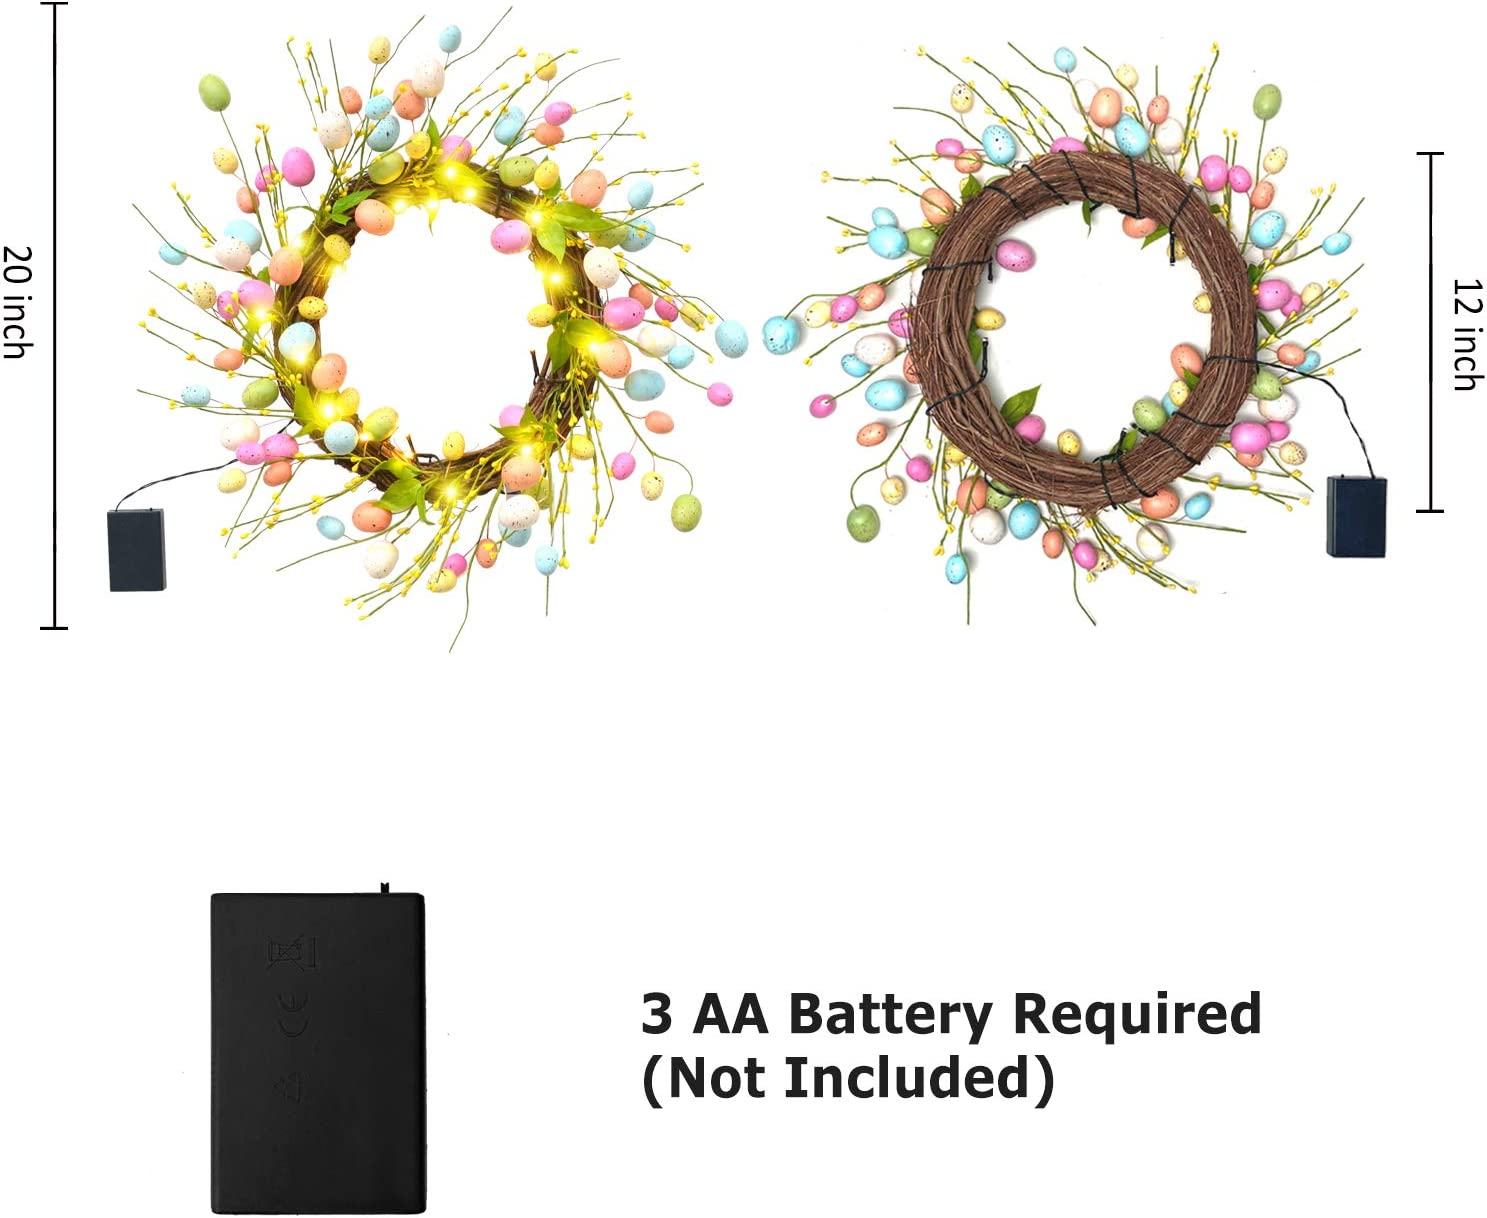 Twigs and Pastel Spekled Easter Eggs Hanging D/écor on Doors Walls and Windows Easter Gift ALLADINBOX 20 Inch Easter Wreath 20 LEDs Timer Control with Mixed Flowers Grass